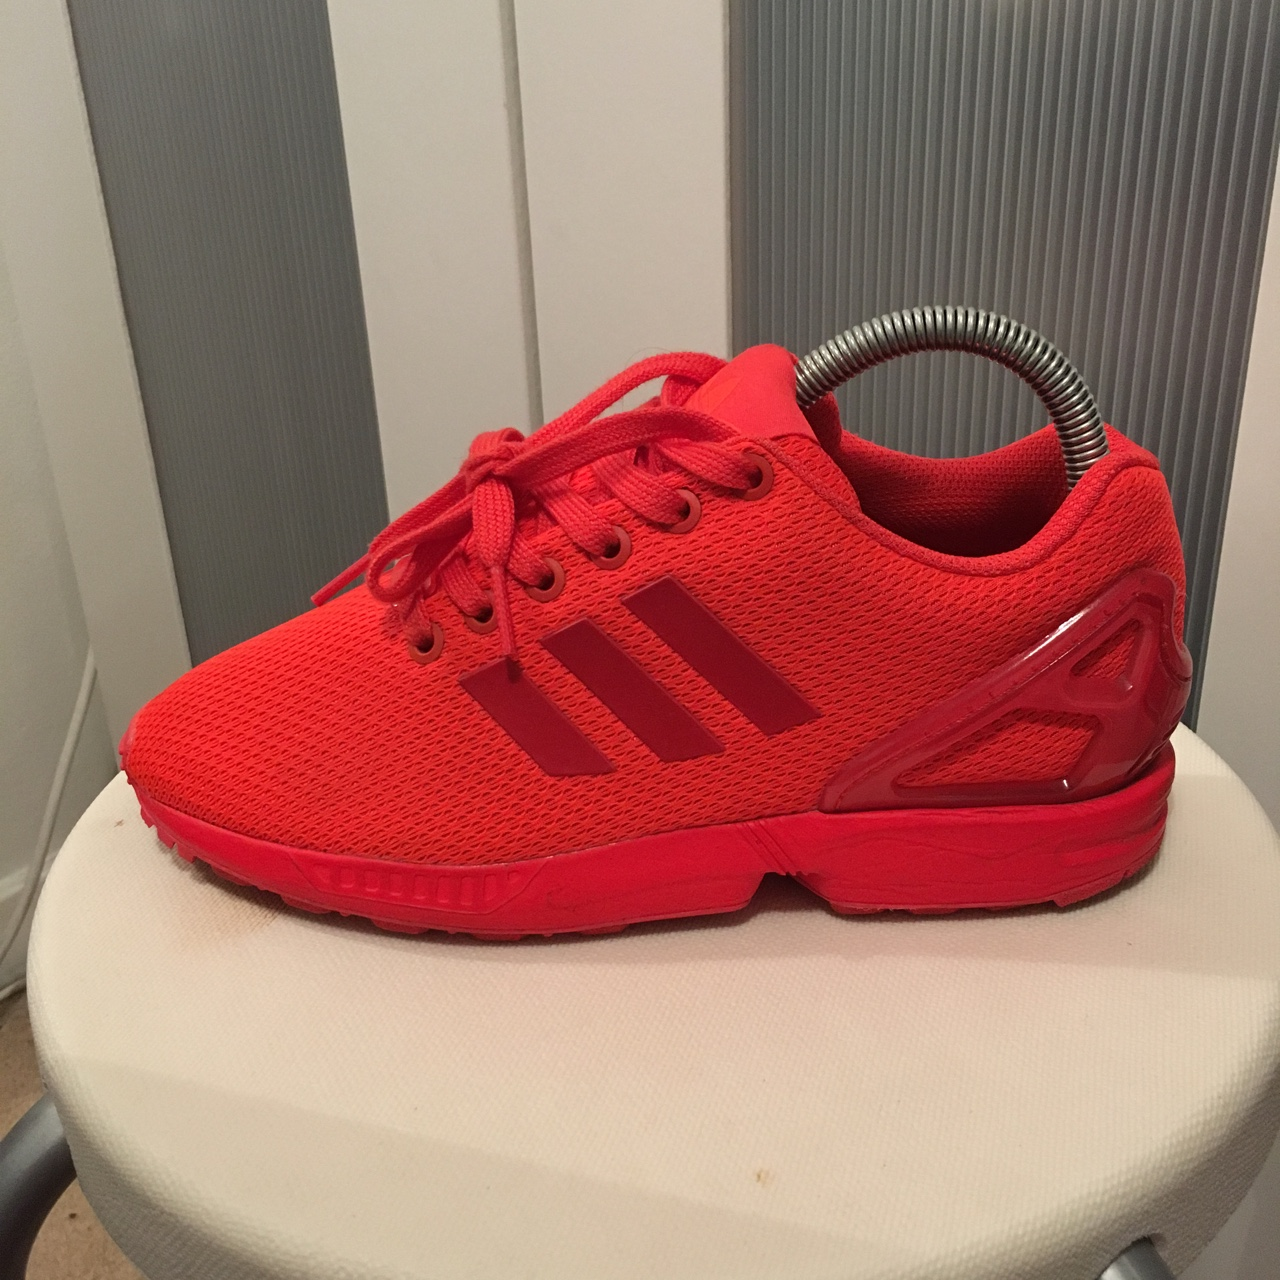 competitive price 20e9d 72eb4 Bright red/orange adidas zx Flux. Bought off of eBay... - Depop